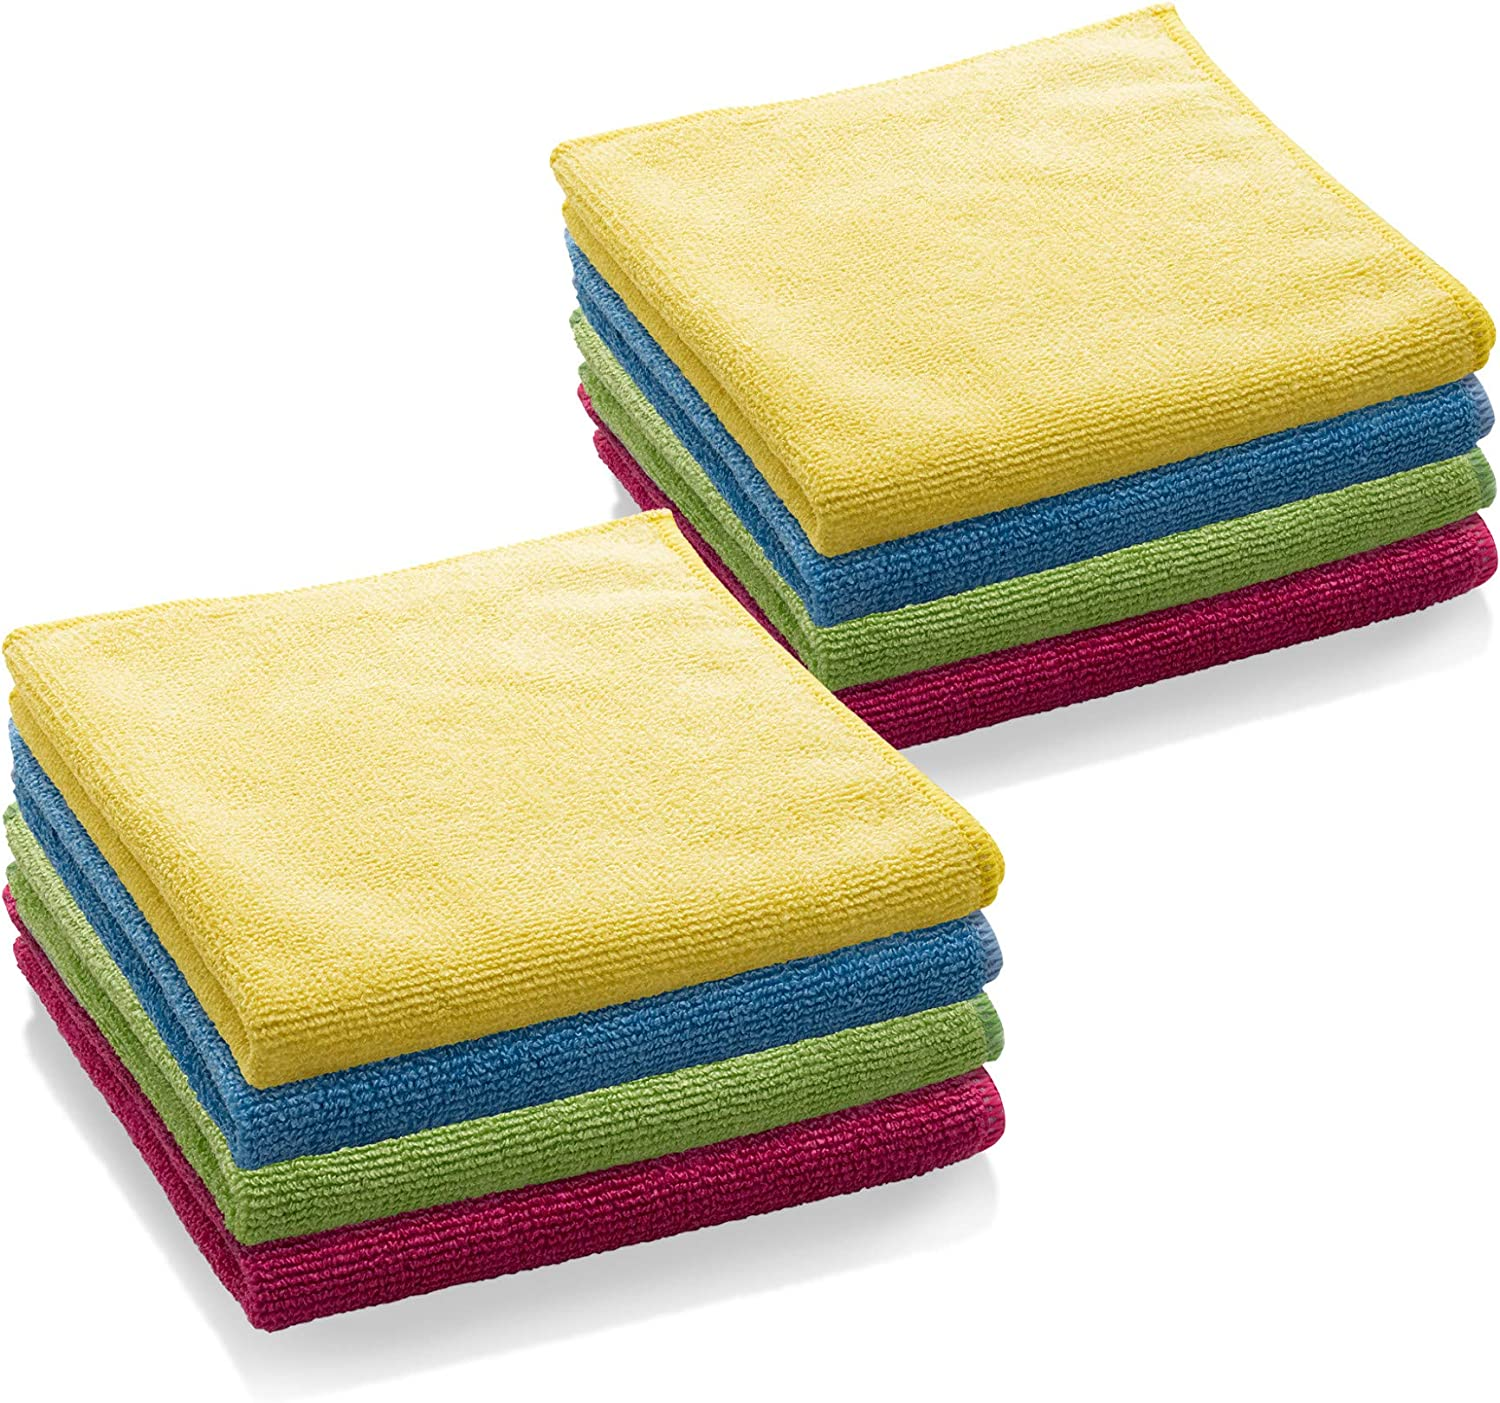 E-Cloth General Purpose Microfiber Cleaning 25% OFF Wash 300 Cloth Guar Popular product